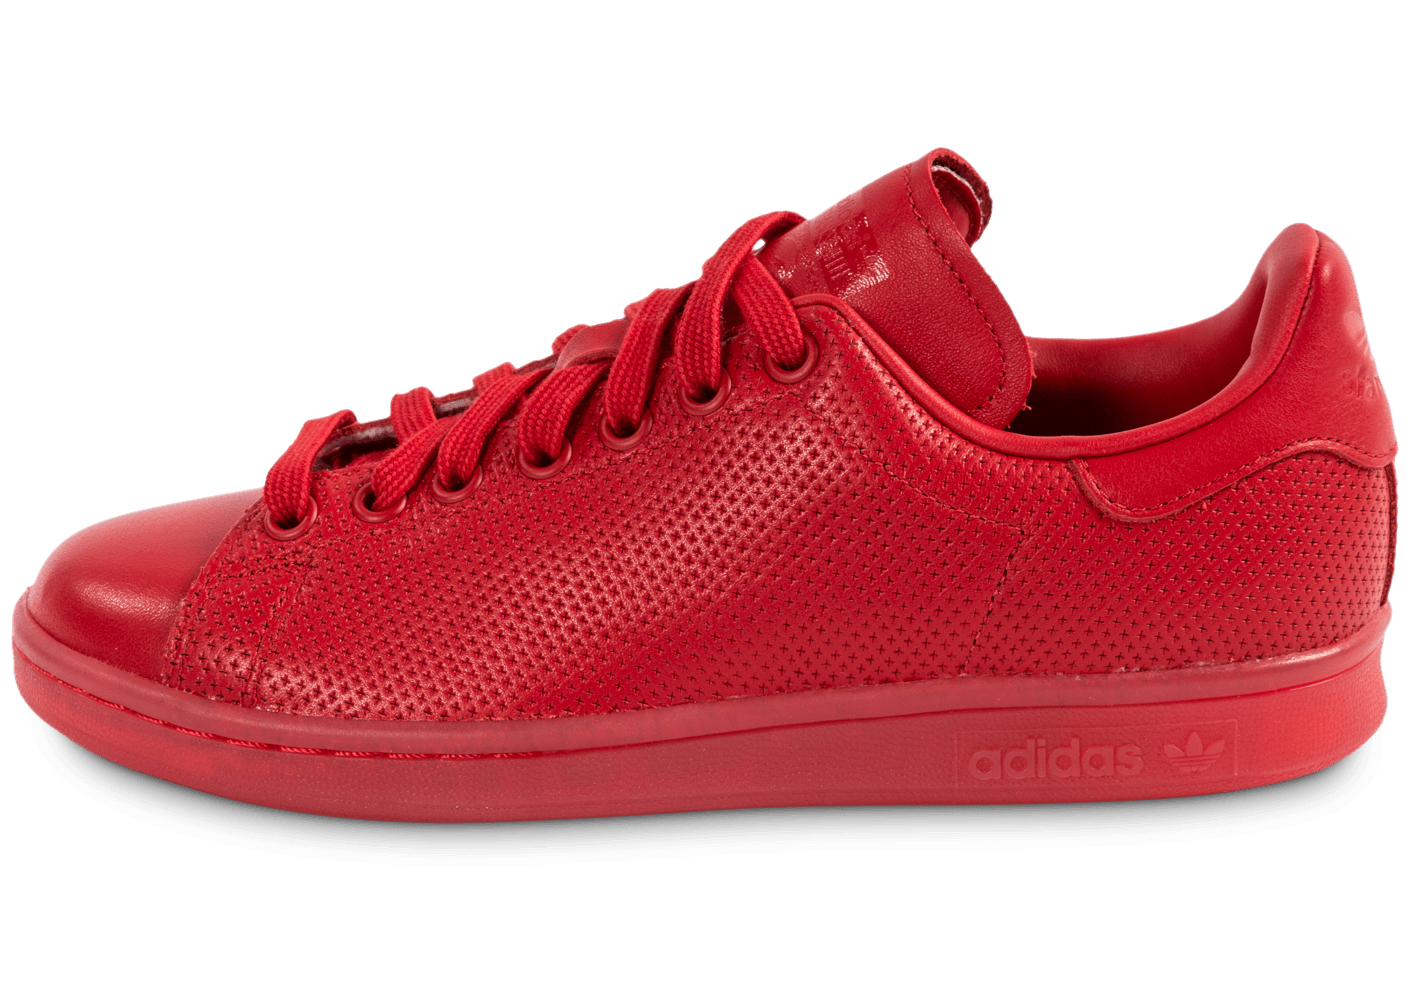 adidas stan smith adicolor w rouge chaussures adidas. Black Bedroom Furniture Sets. Home Design Ideas